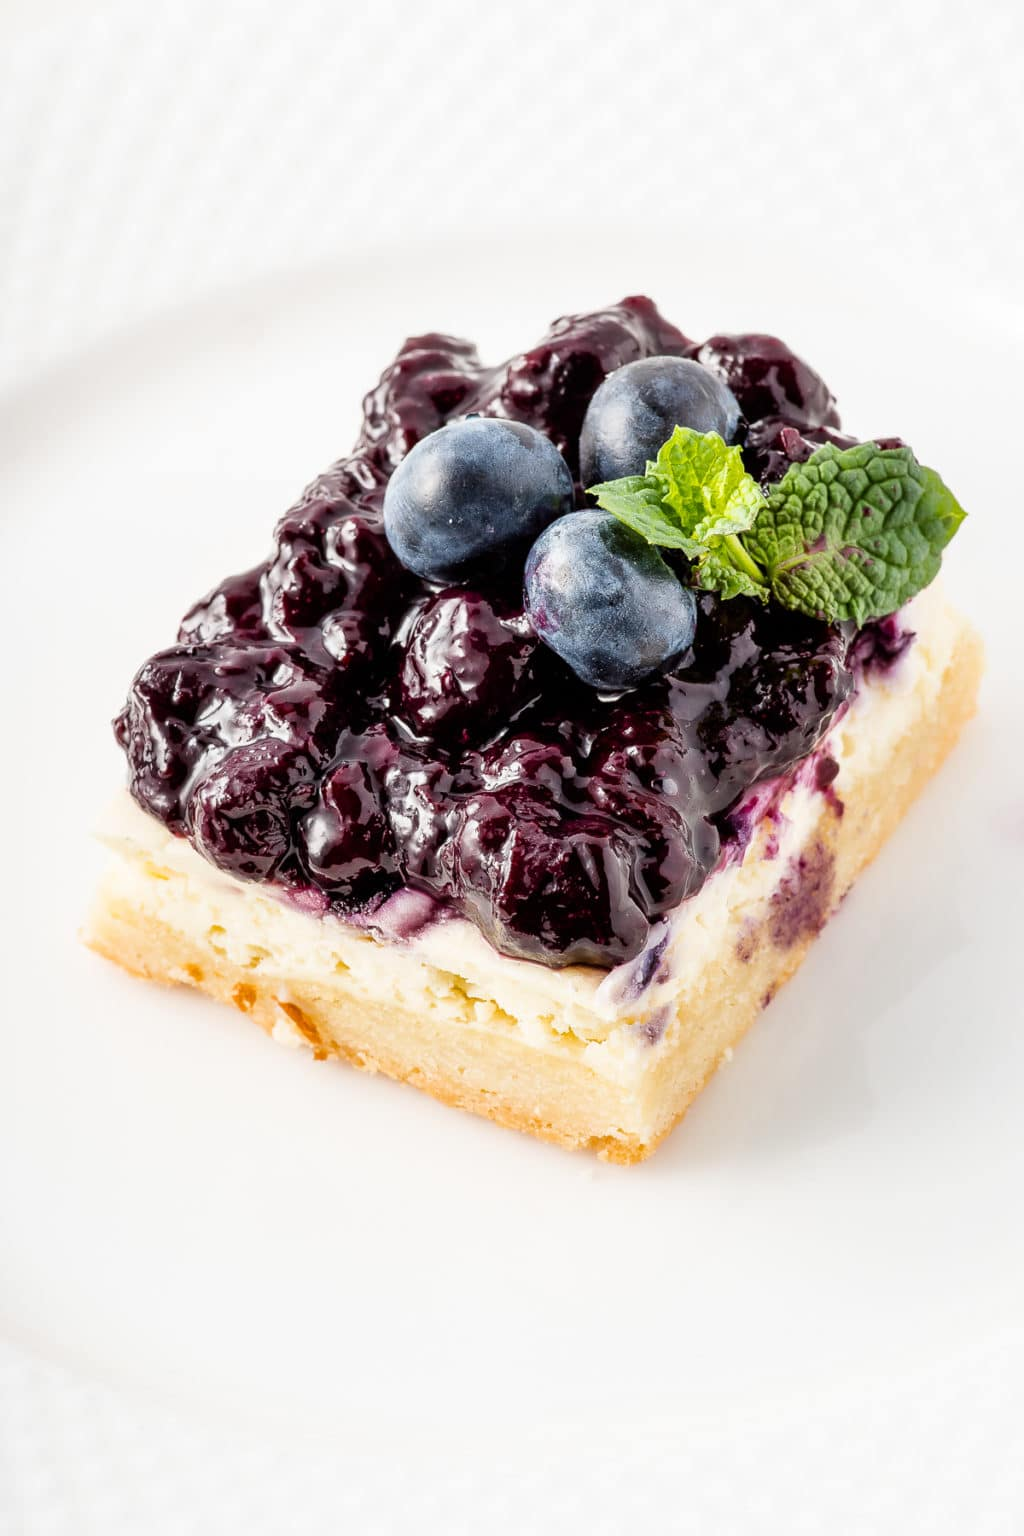 Cheesecake bars topped with blueberry jam and fresh blueberries